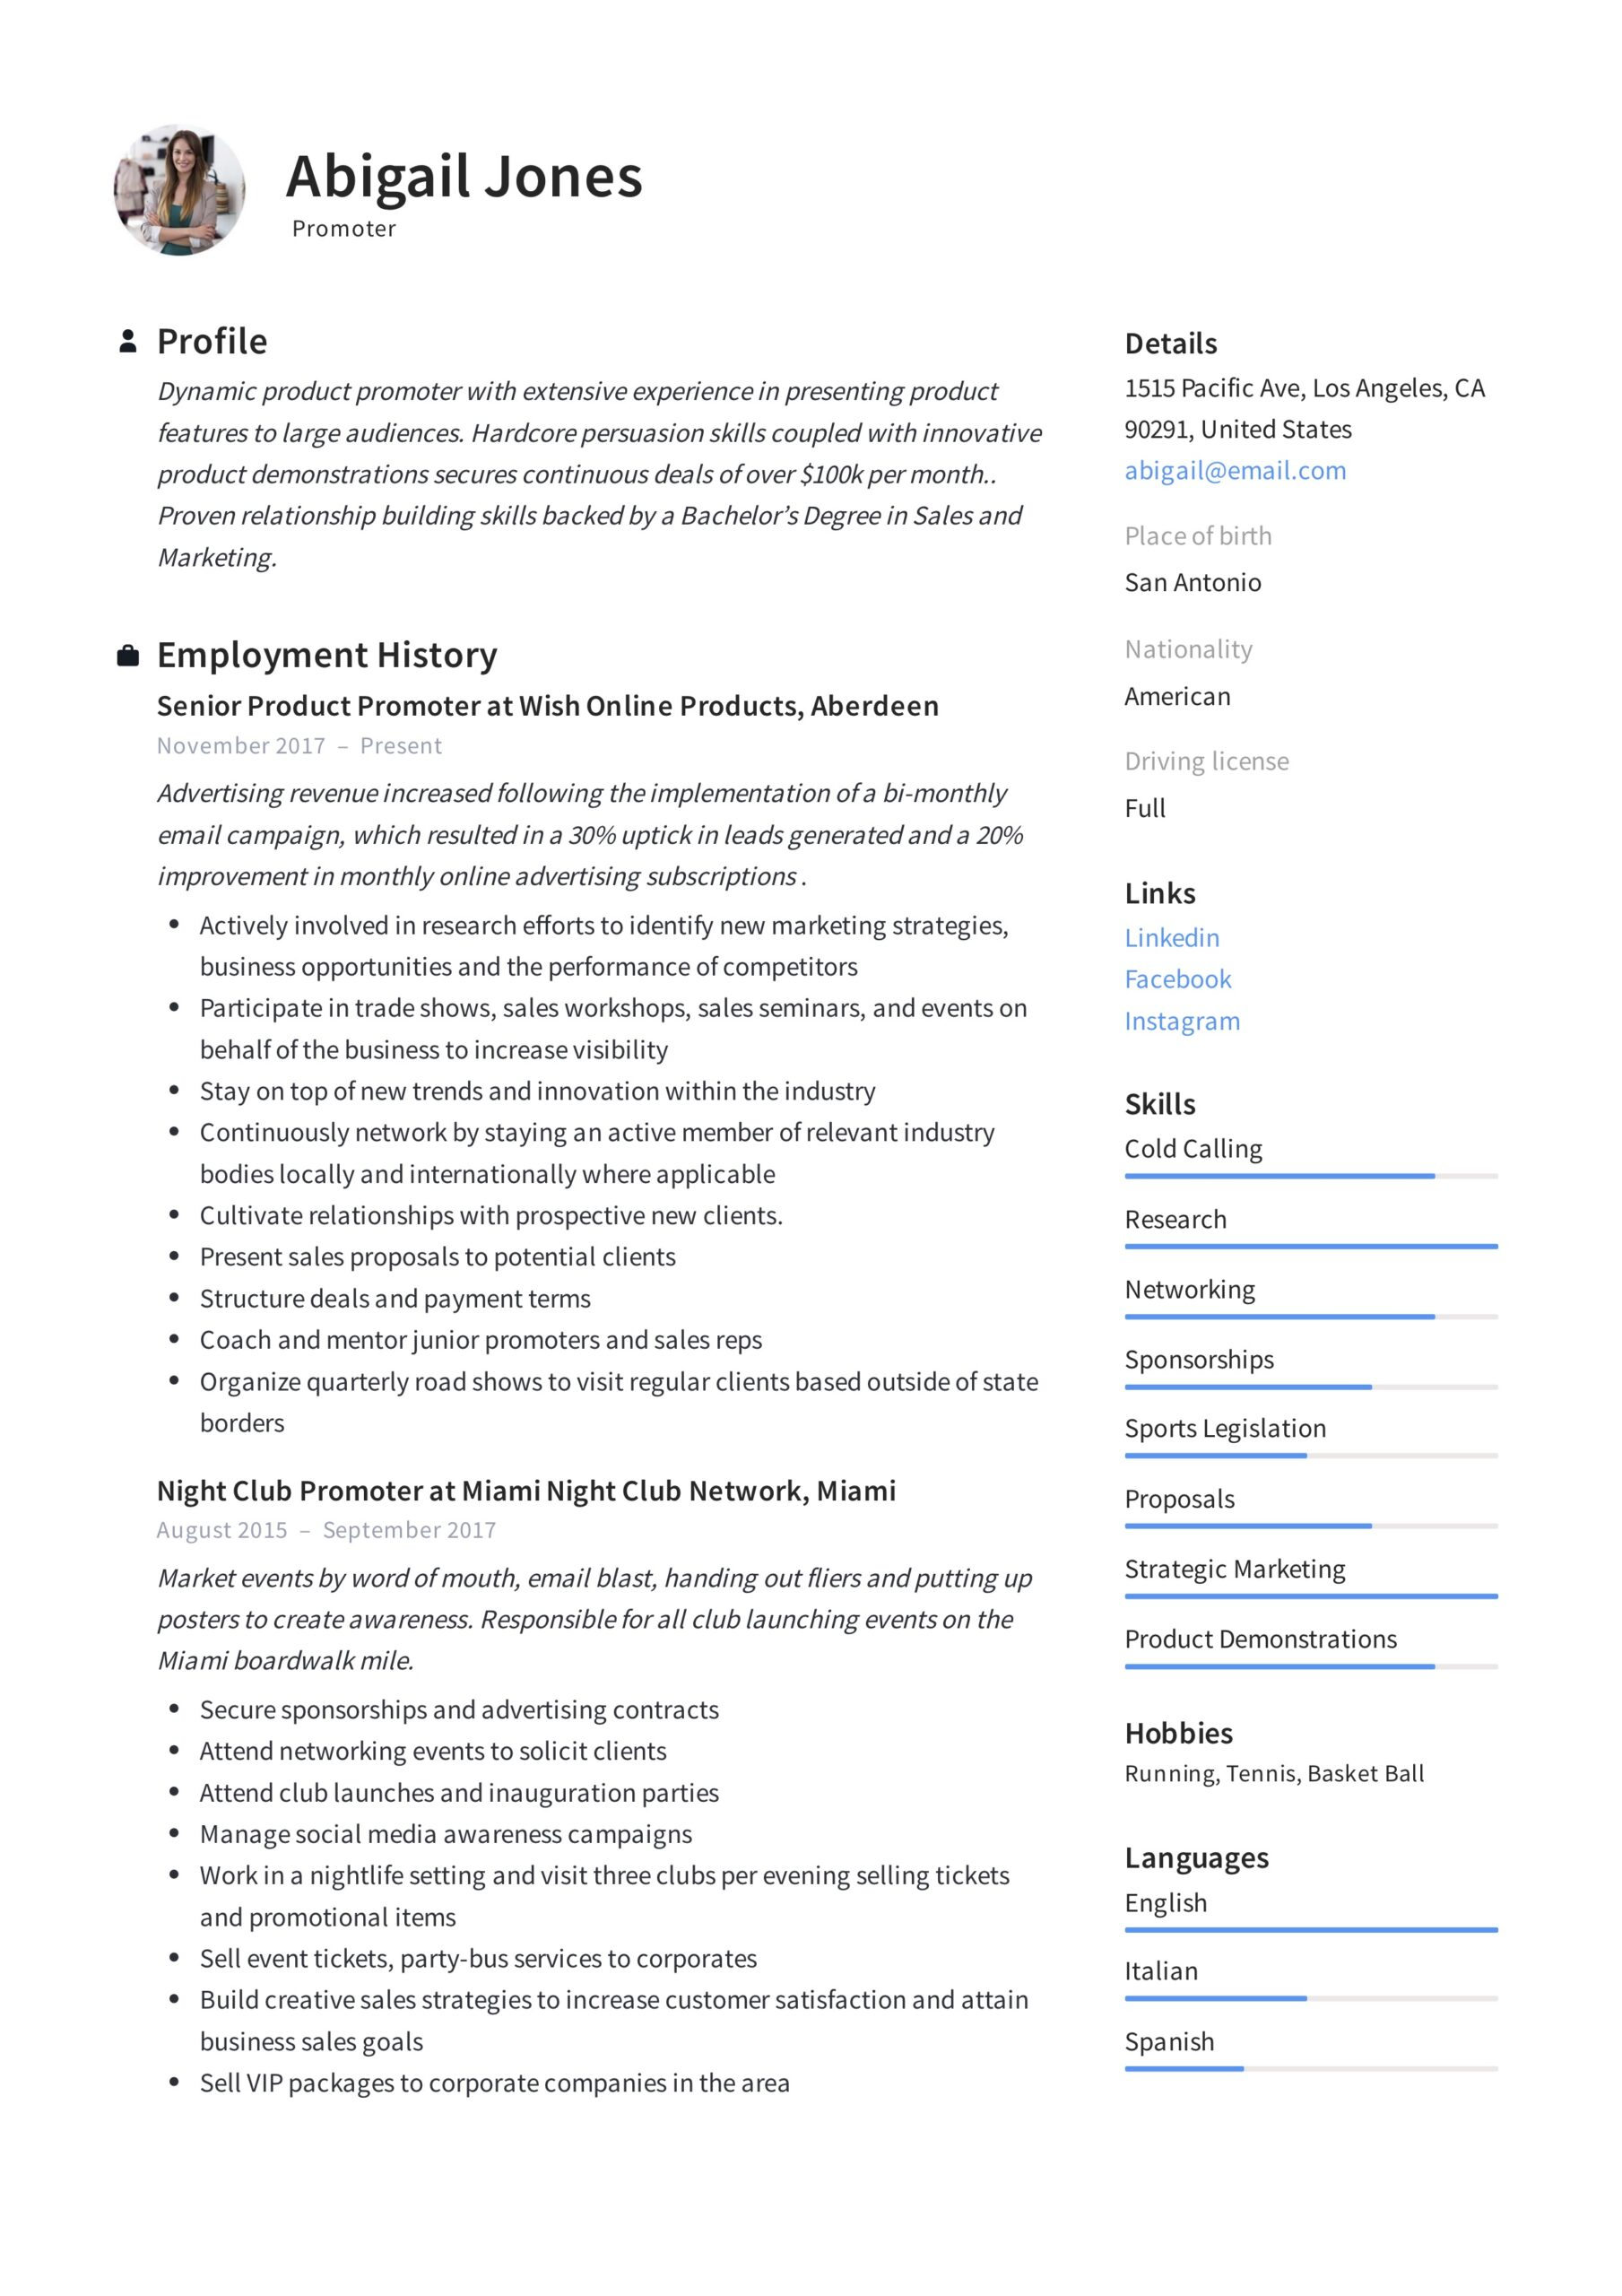 promoter resume example writing guide samples pdf short and engaging pitch about yourself Resume Short And Engaging Pitch About Yourself Examples For Resume